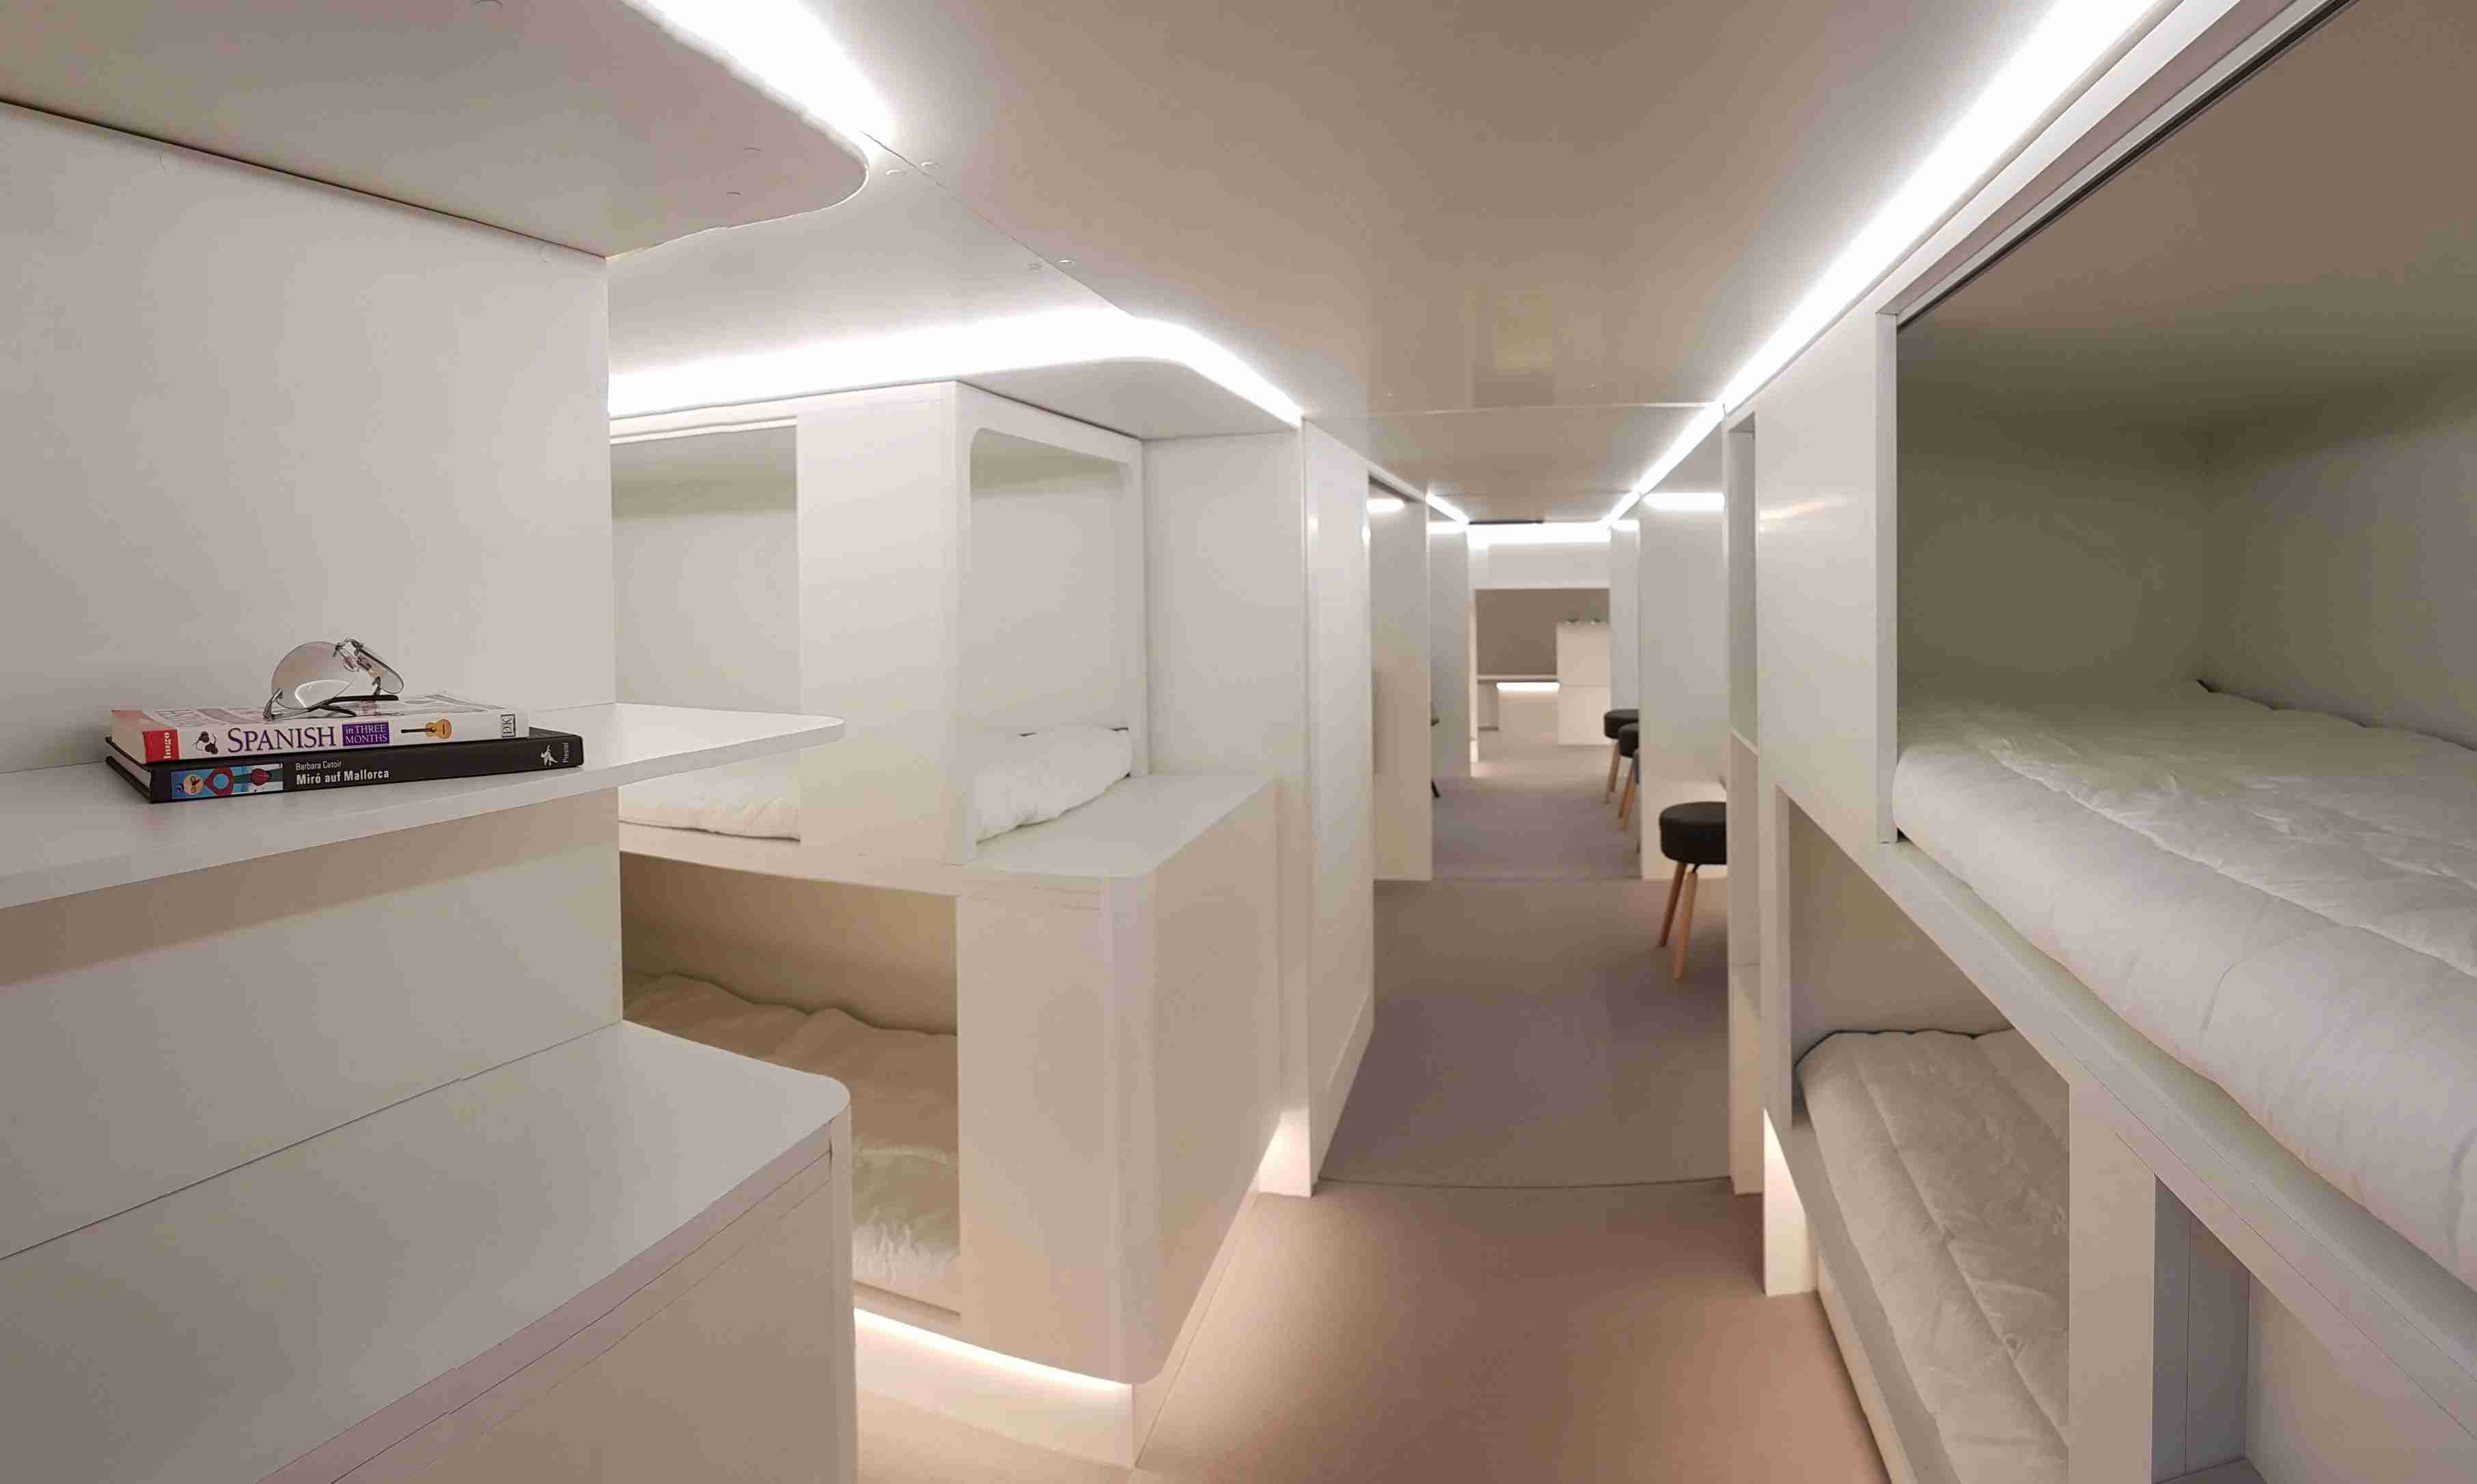 Sleeping berths (Images courtesy of Airbus and Zodiac Aerospace)